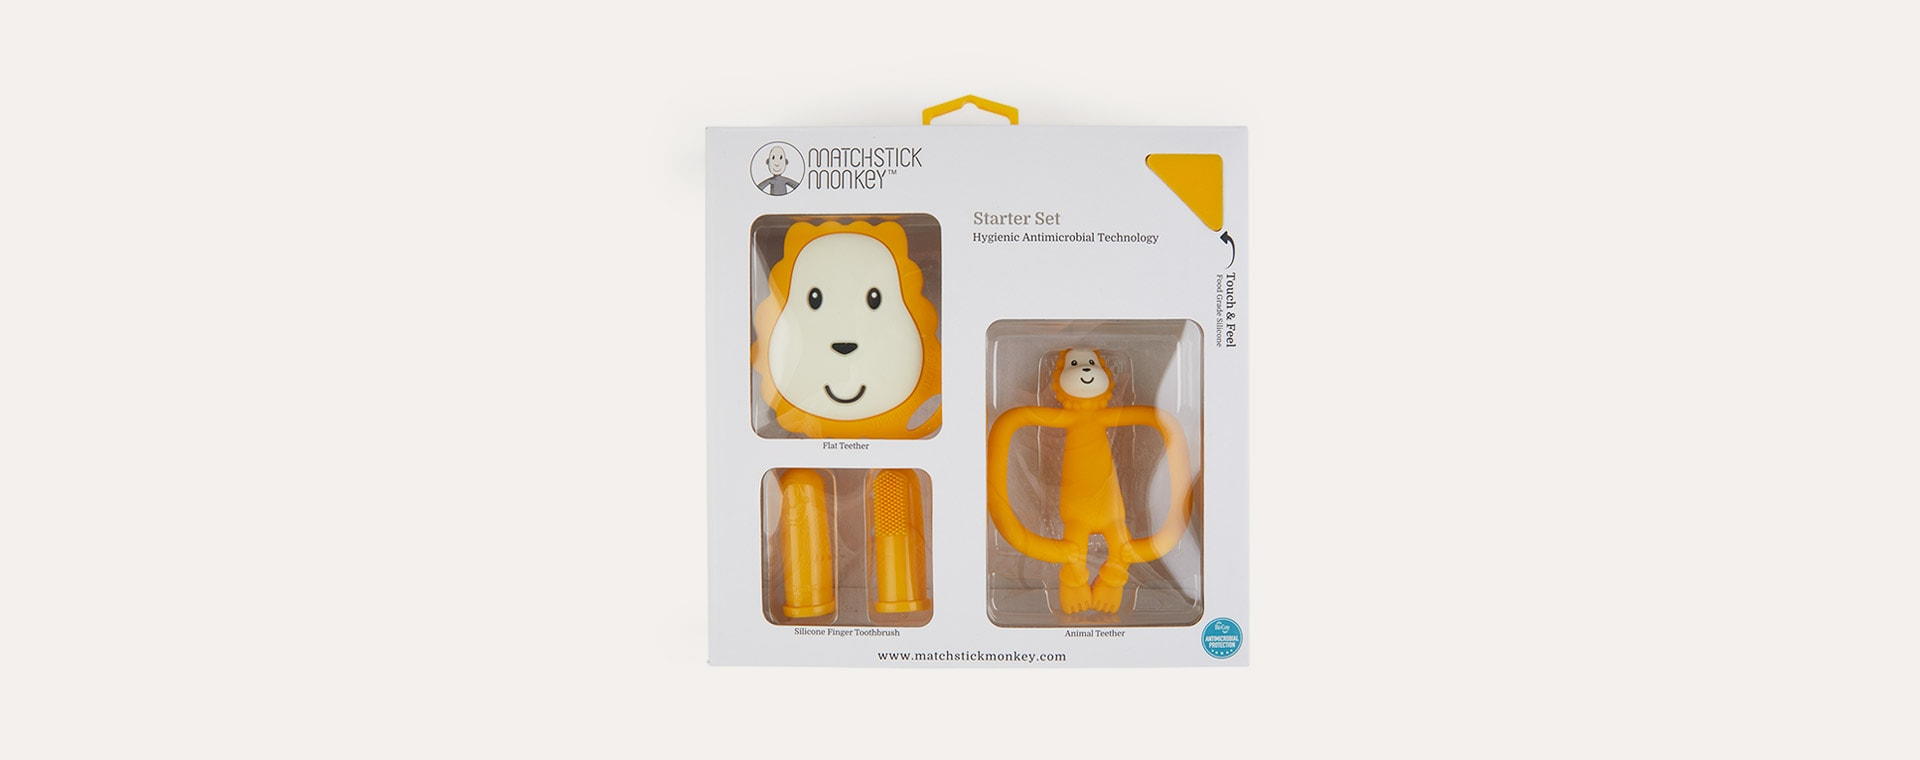 Lion Matchstick Monkey Teething Starter Set